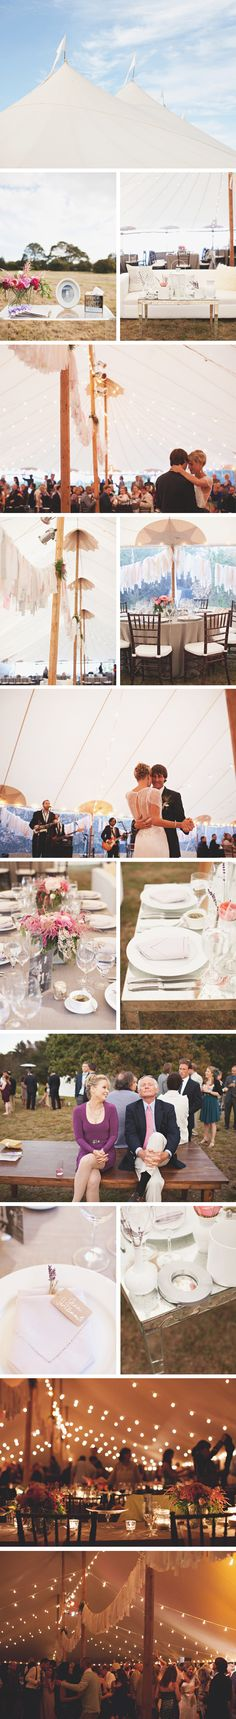 A gallery of images from Alix & Ollie's stunning Sperry tent wedding. http://www.papakata.co.uk/gallery/sperry-wedding-alix-ollie/